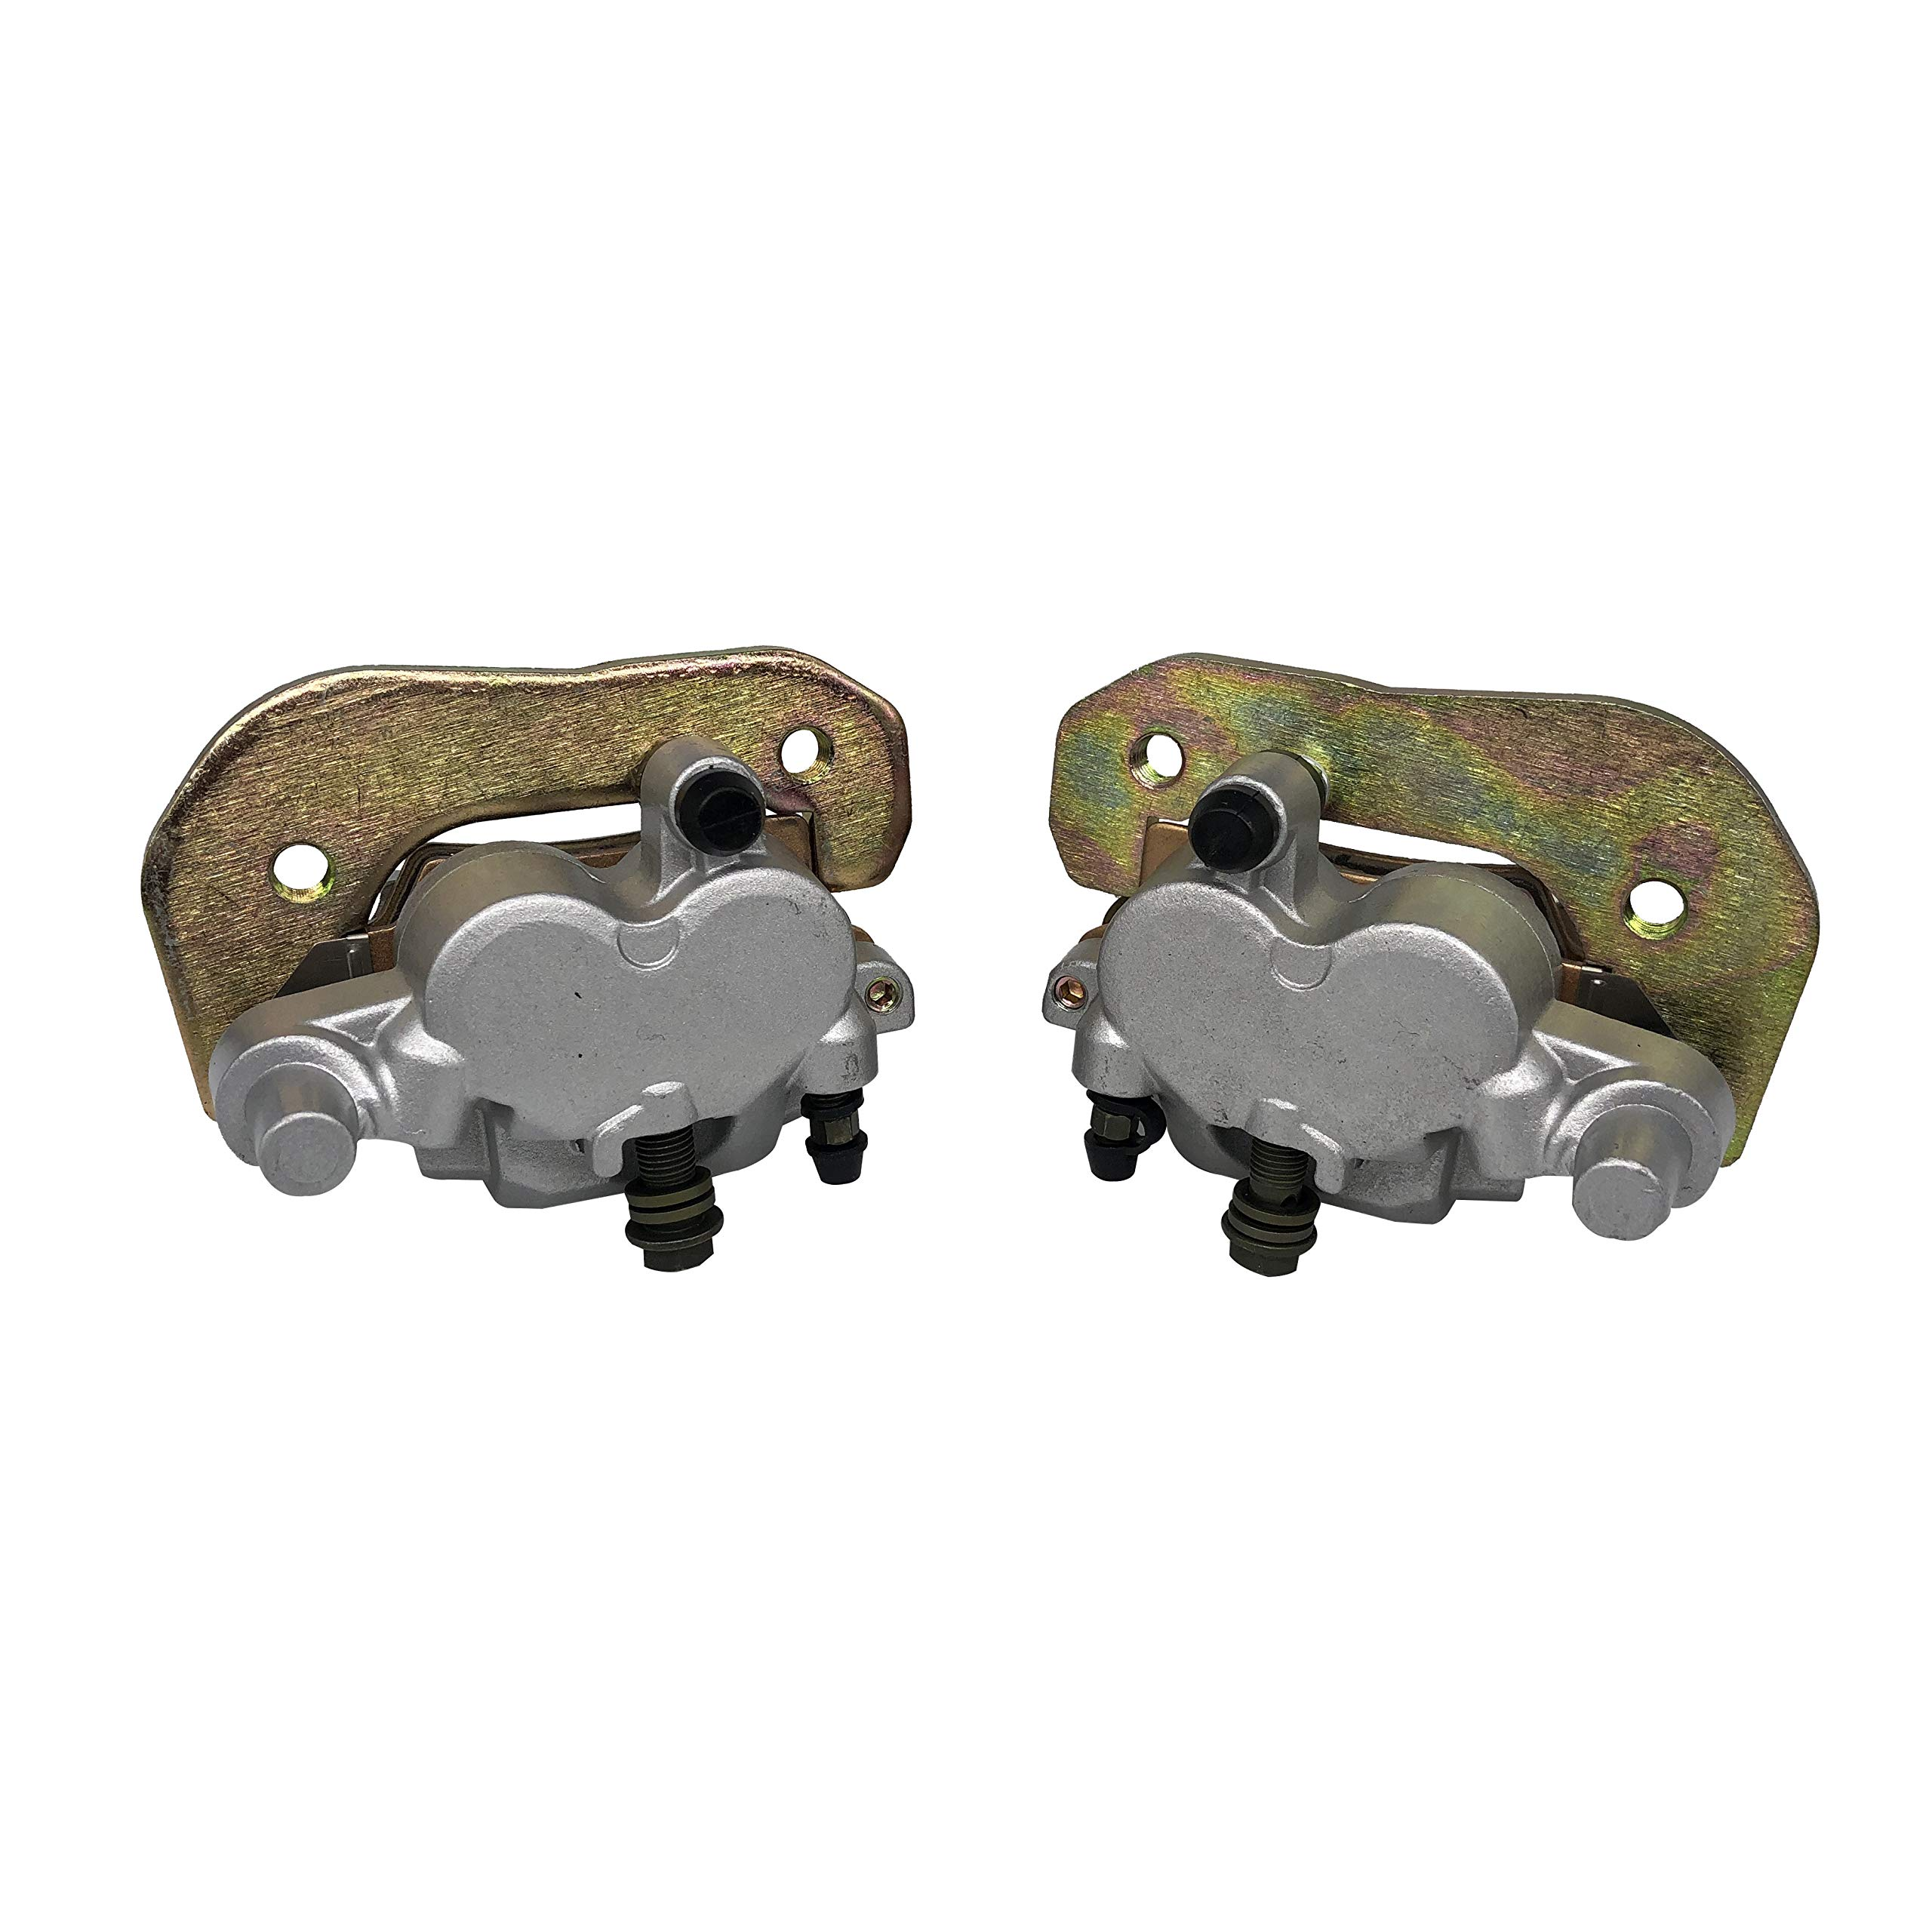 SHUmandala Front Brake Caliper for Can Am Outlander 1000 EFI XMR, DPS, XT, XT-P, MAX 12-15